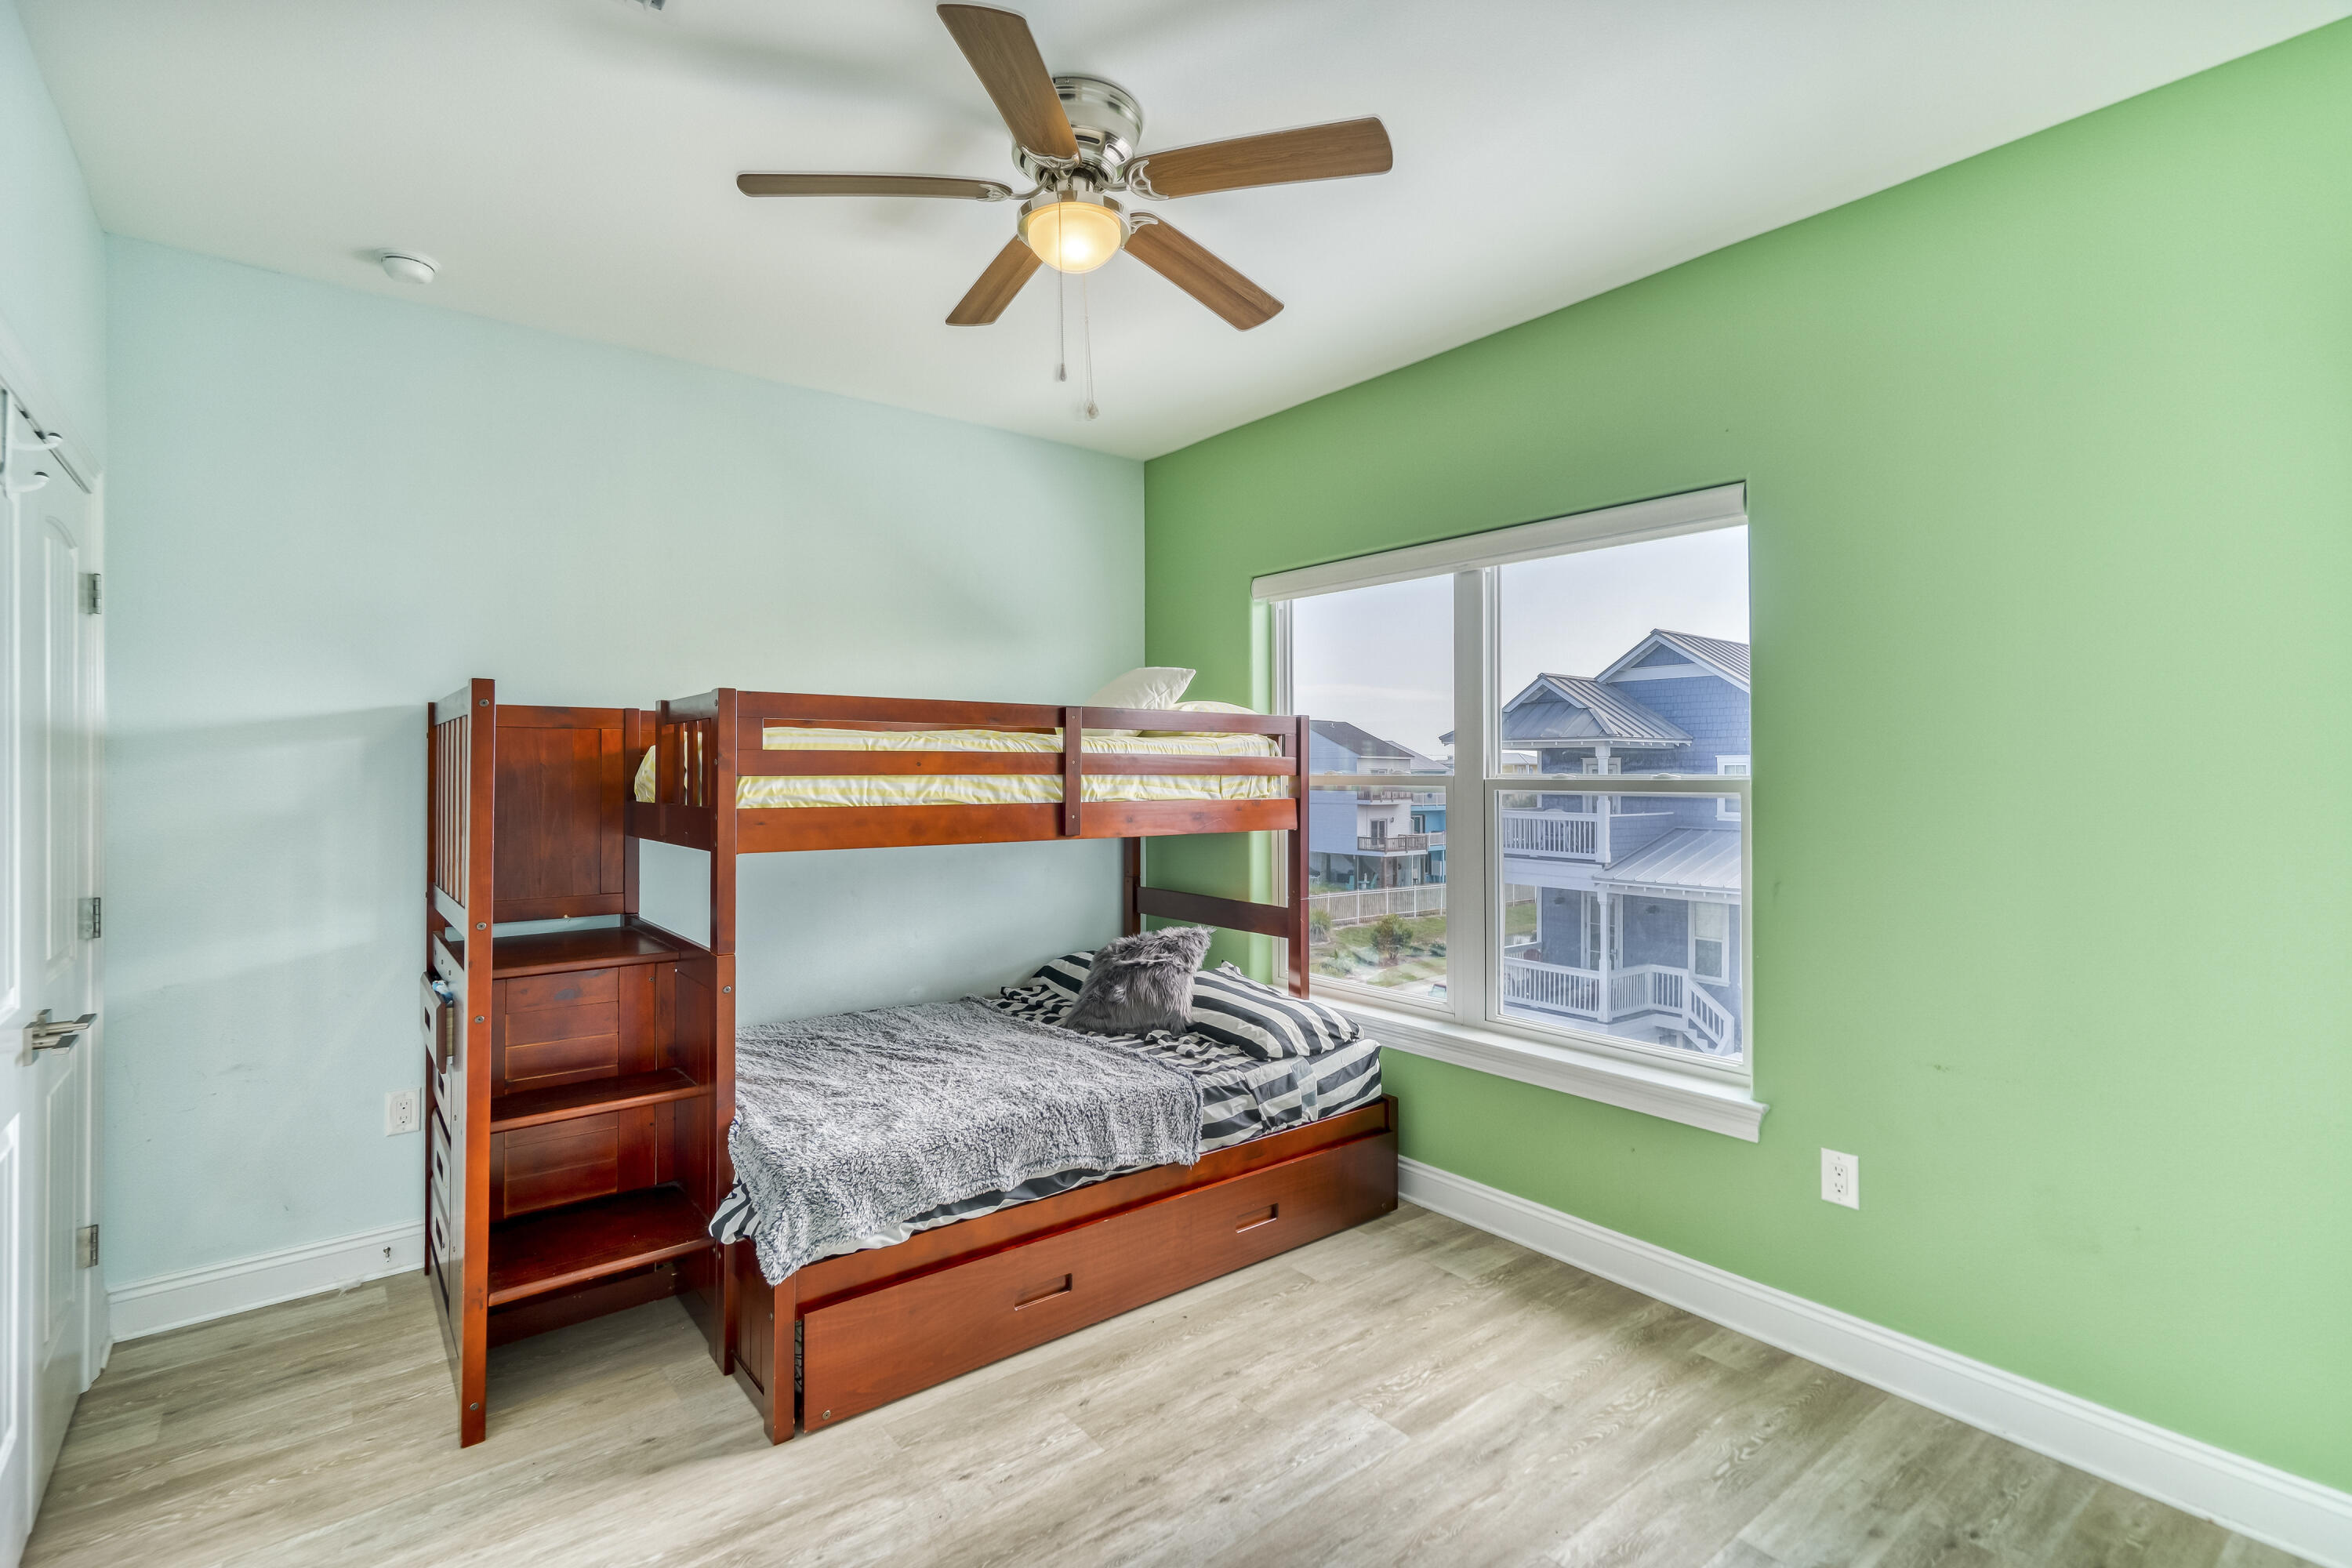 SPACIOUS BEDROOM WITH BUNKS